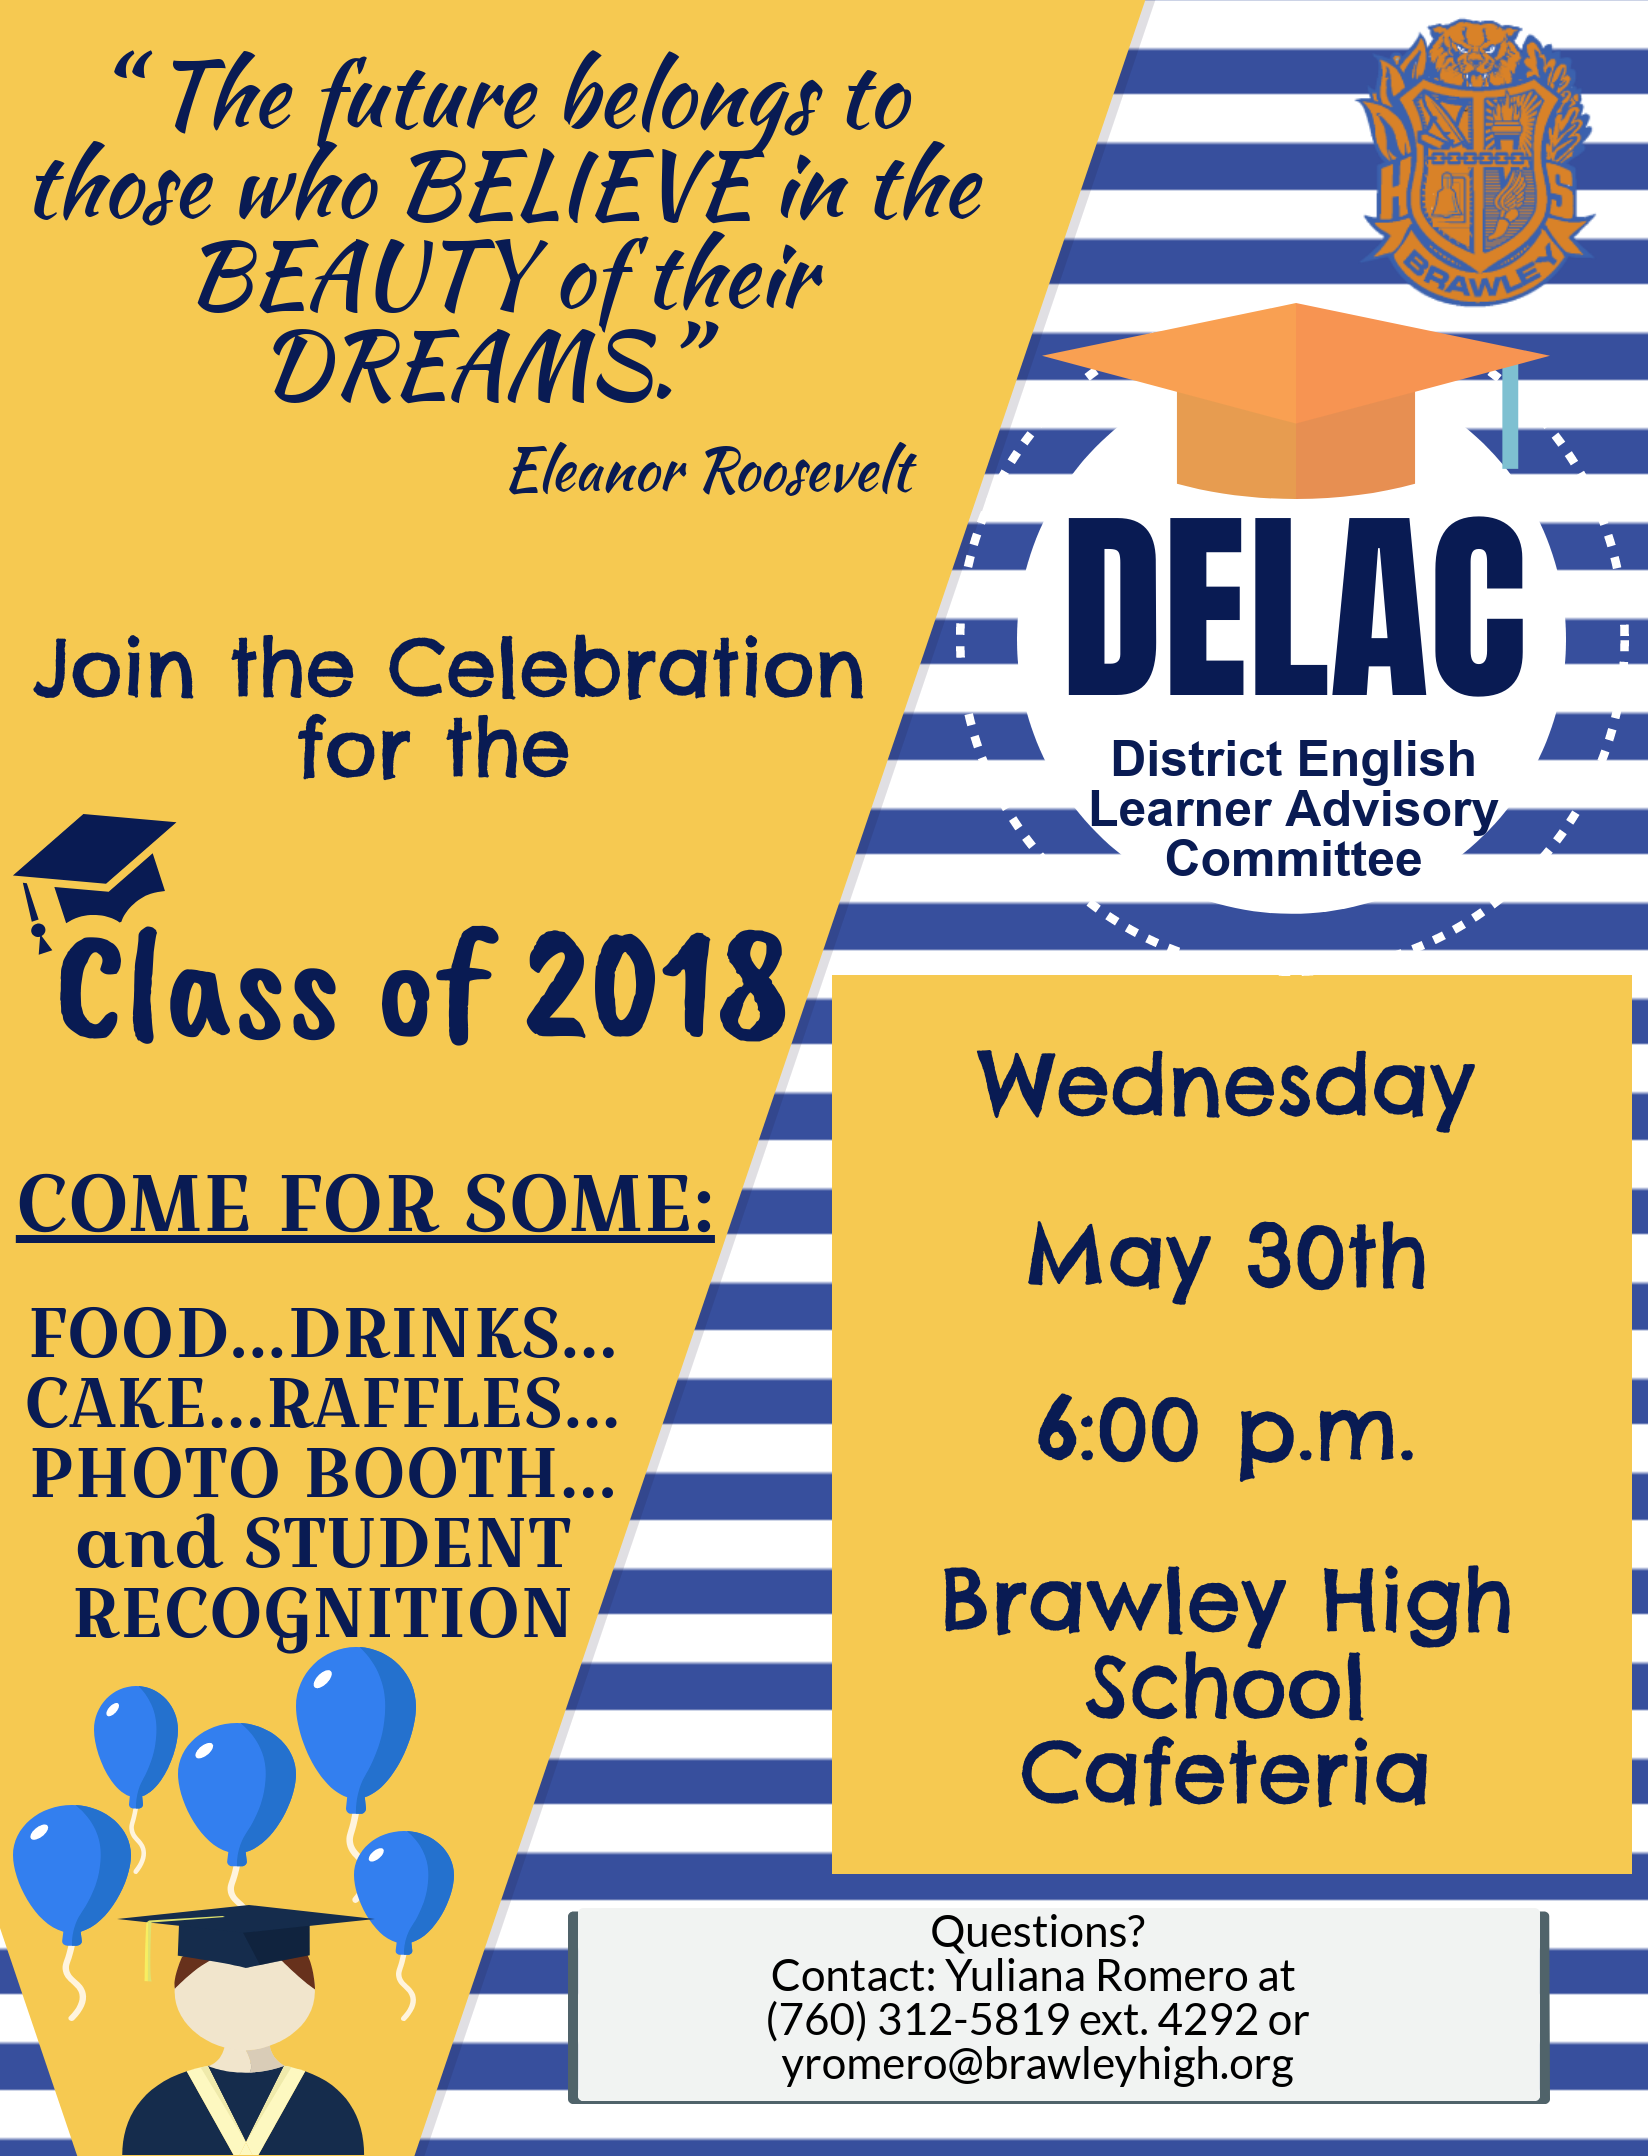 DELAC Class of 2018 Celebration for English Learners